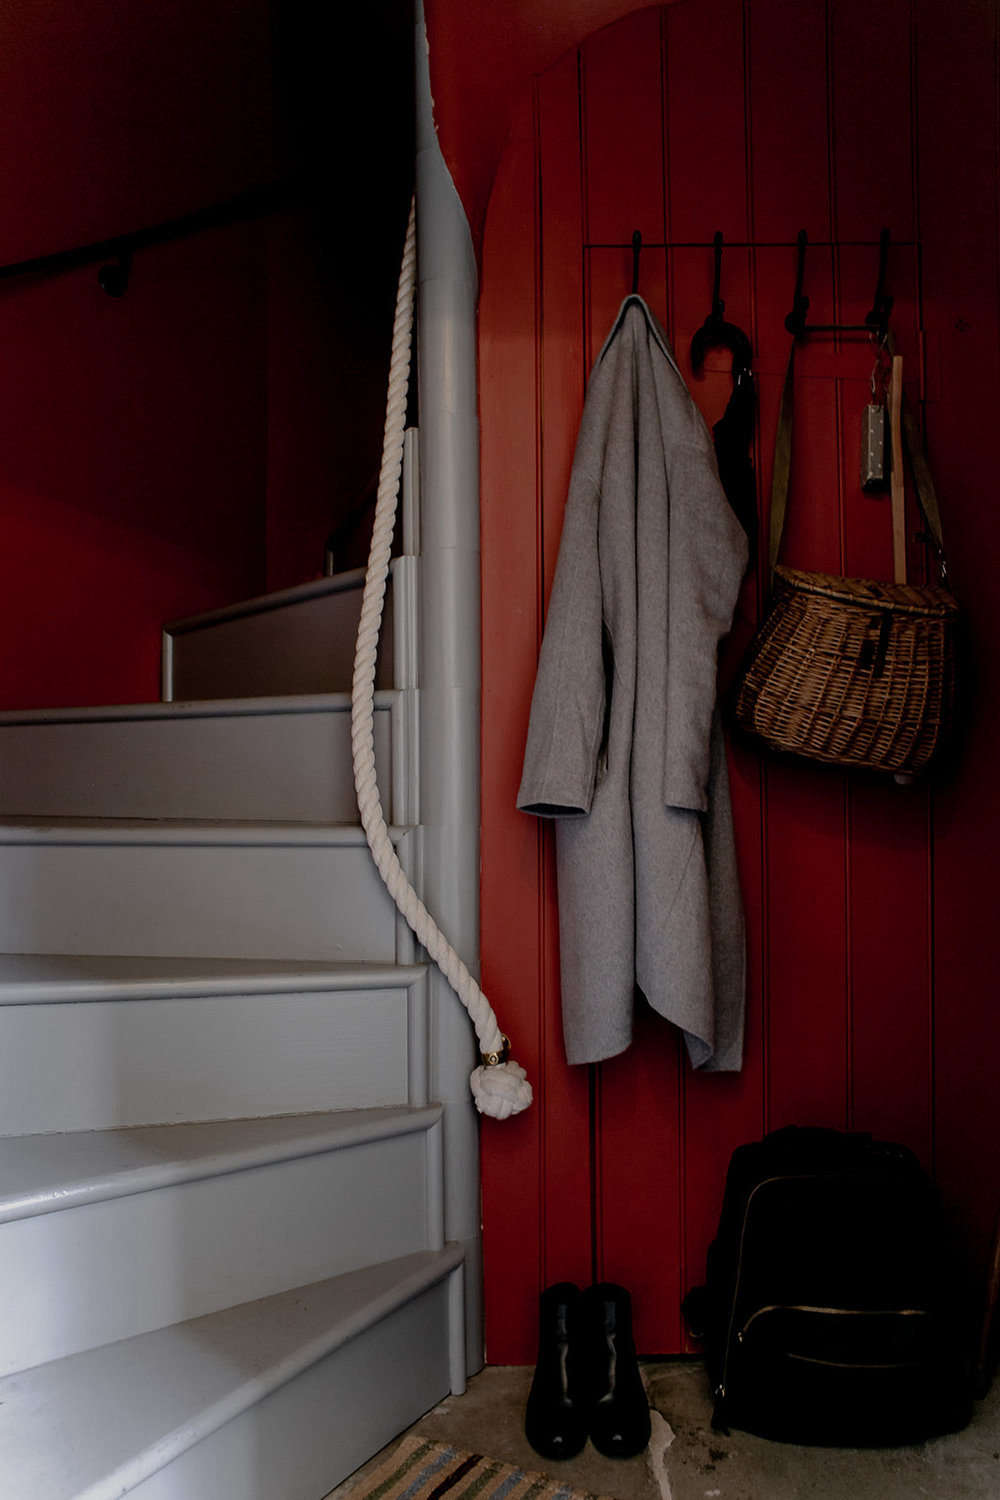 A winding staircase with a rope rail greets guests. The walls here are painted Terre d&#8